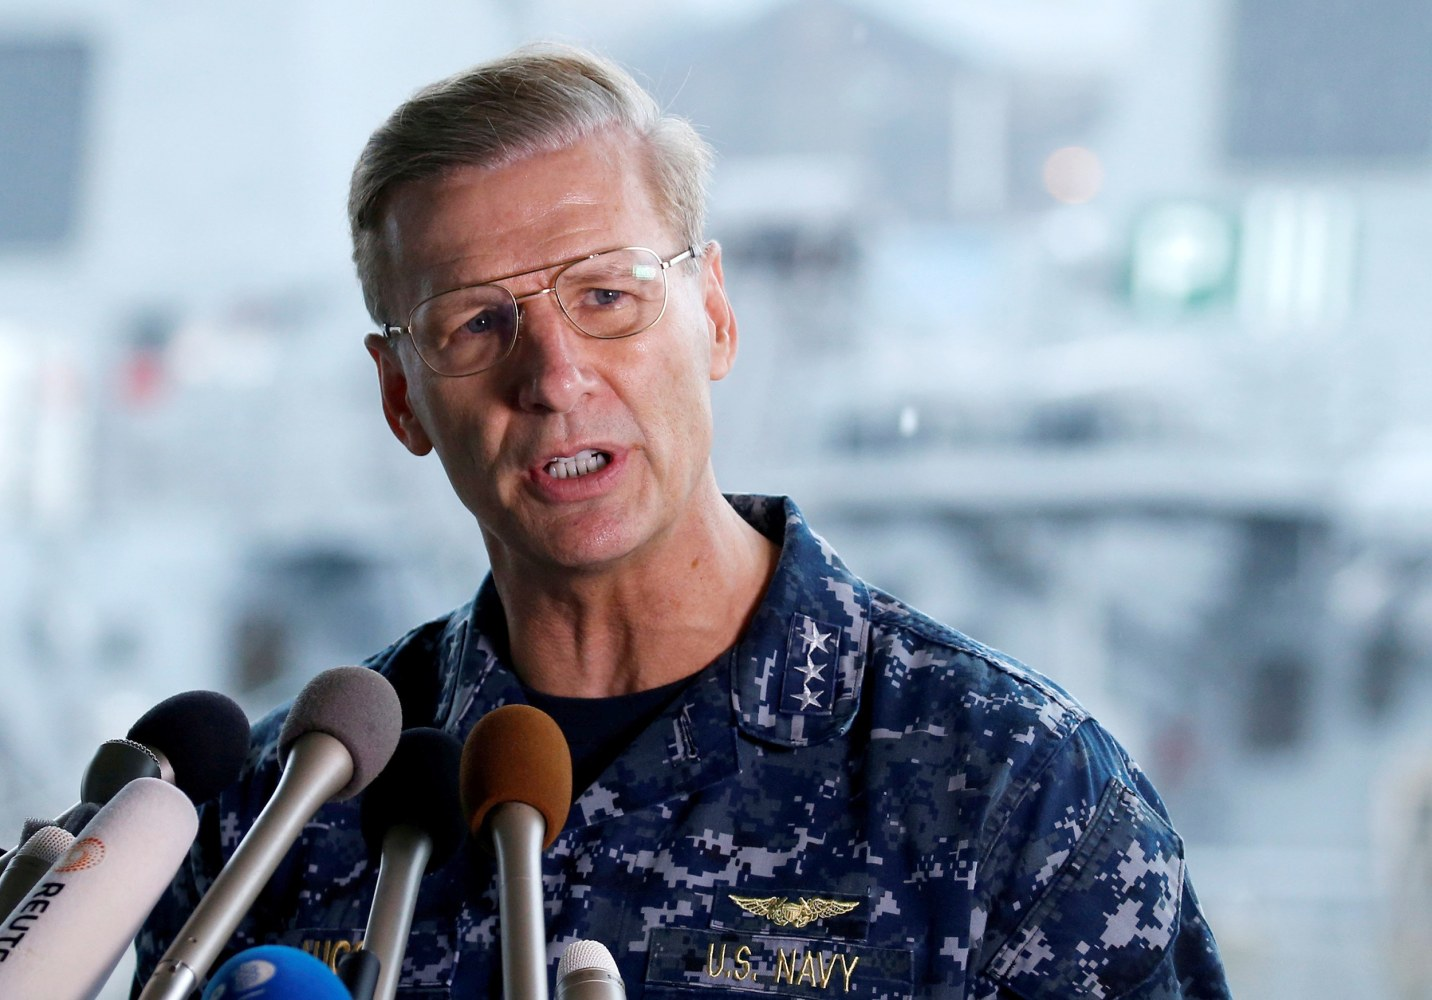 US Navy 7th Fleet commander to be dismissed after deadly collision